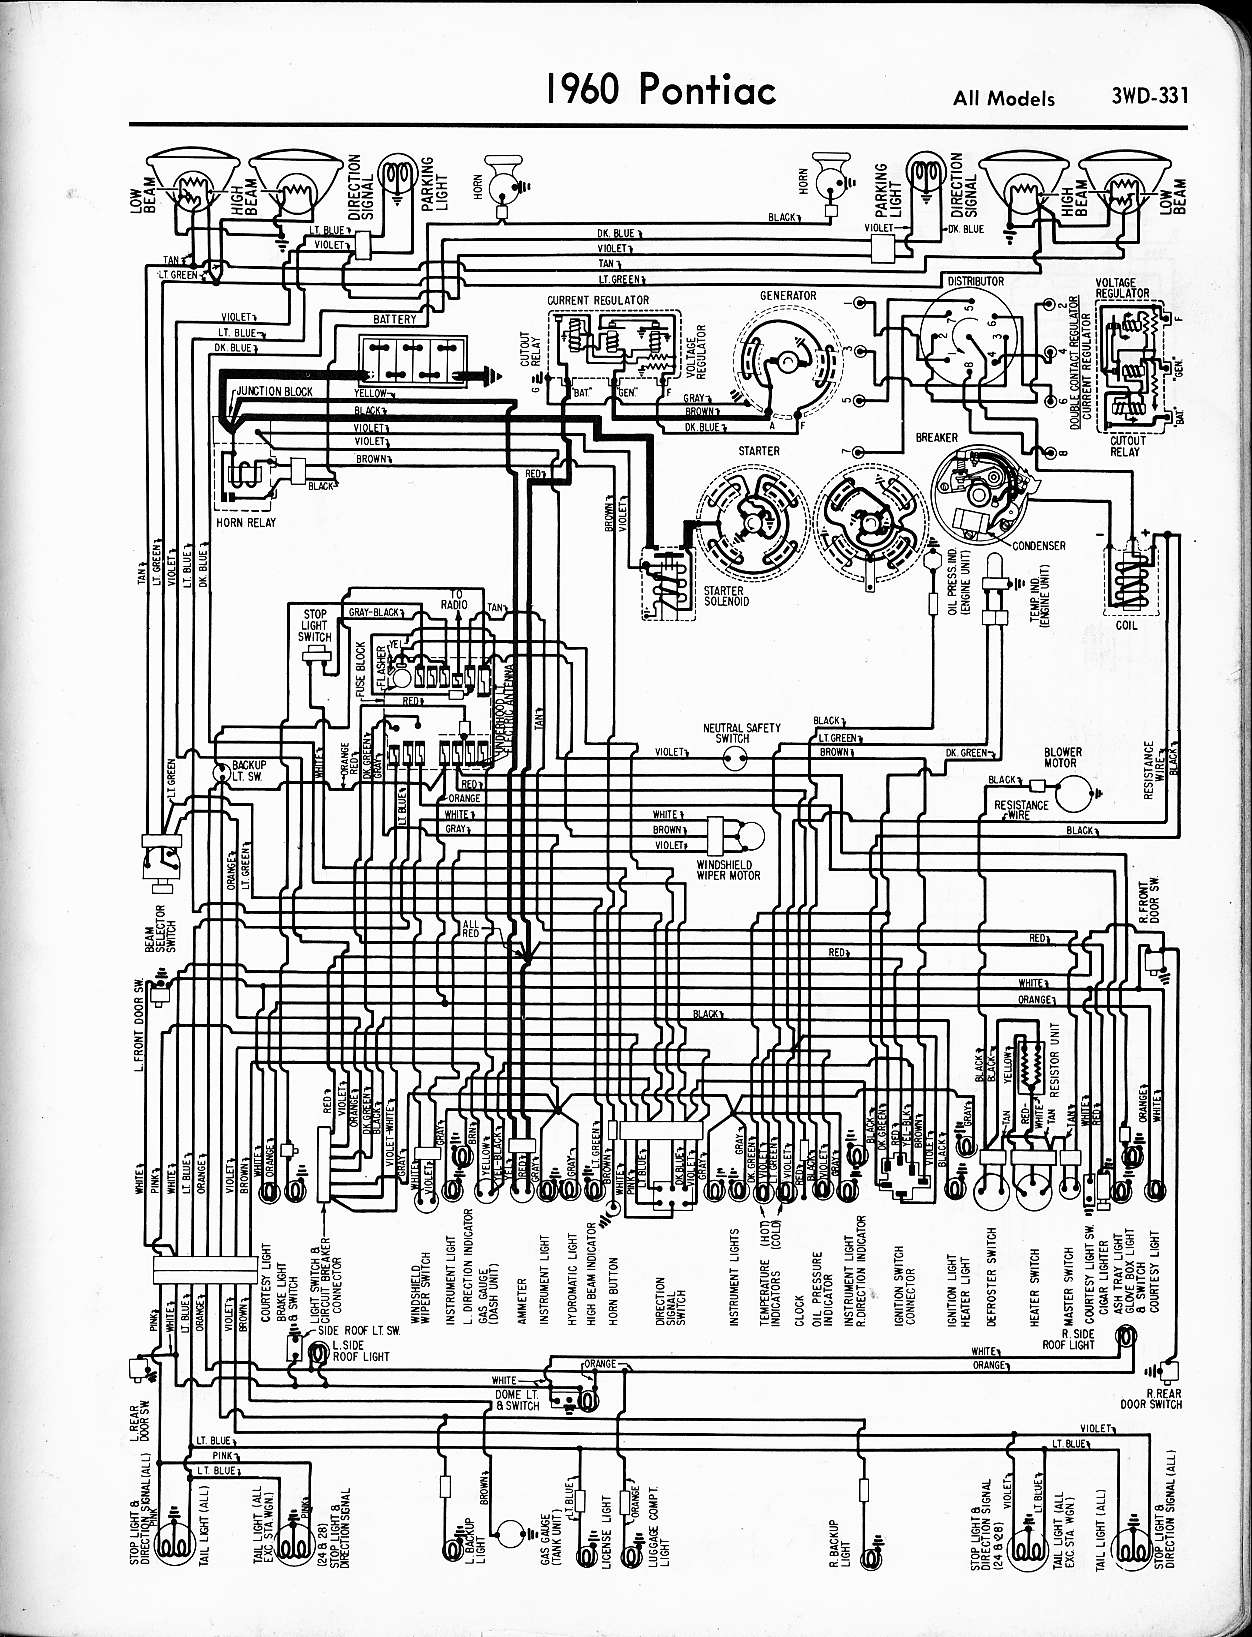 MWire5765 331 1957 pontiac wiring diagram wiring diagram data